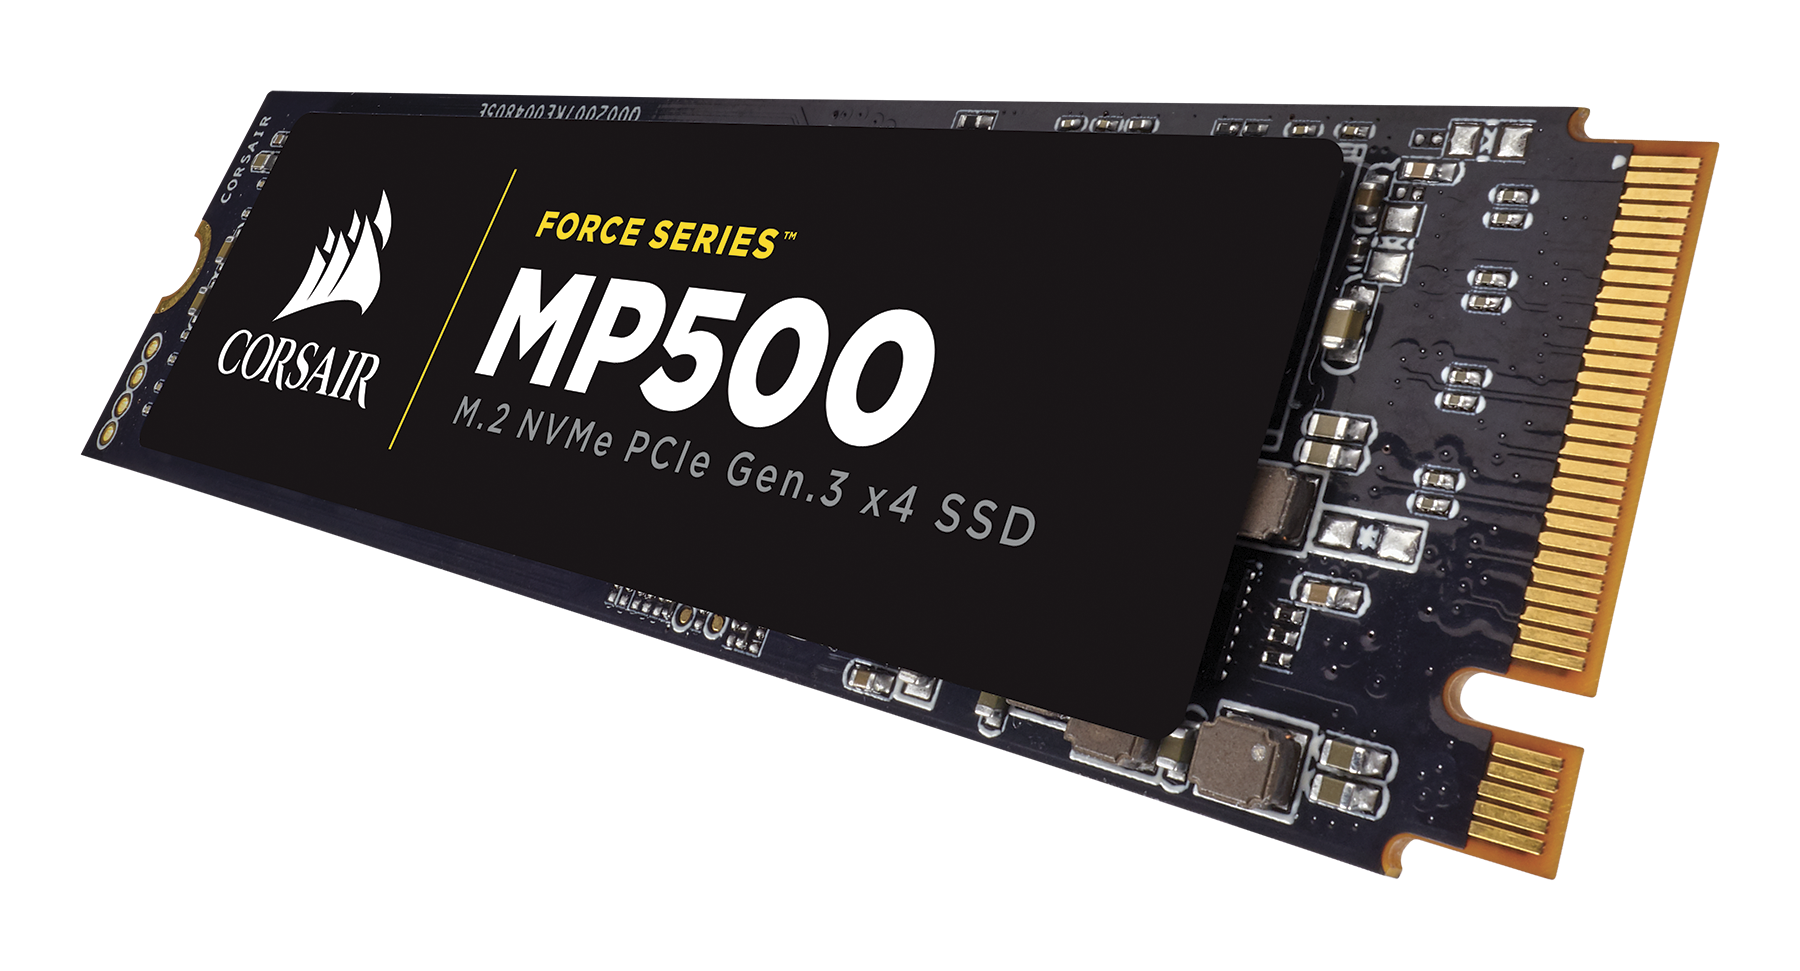 CORSAIR FORCE Series MP500 240GB NVMe PCIe Gen3 x4 M.2 SSD Solid State Storage Up to 3,000MB//s